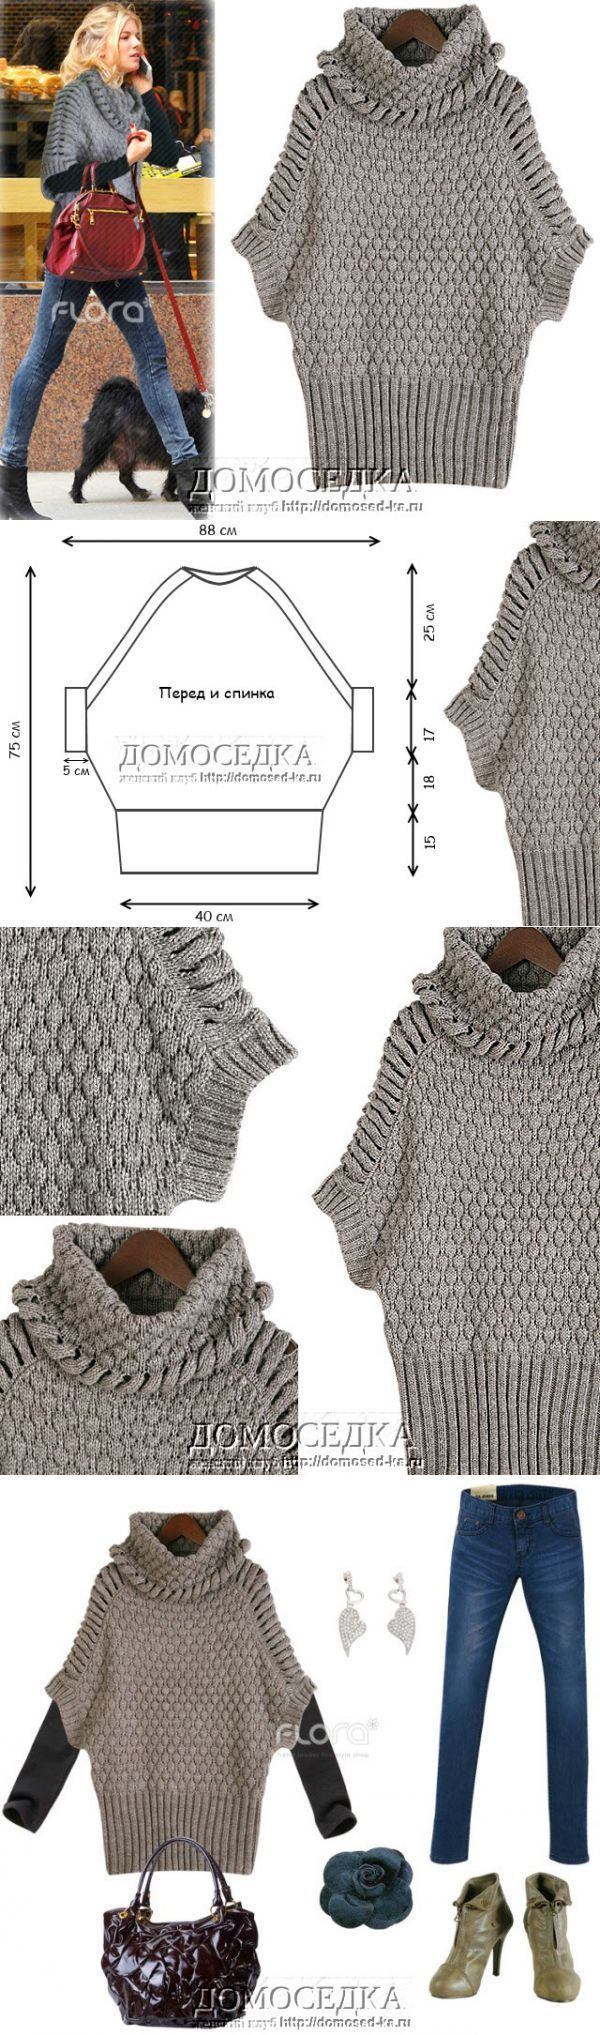 This pattern is in Russian and I didn't try the actual link yet (cuz I don't speak/read Russian) but I love the sweater!